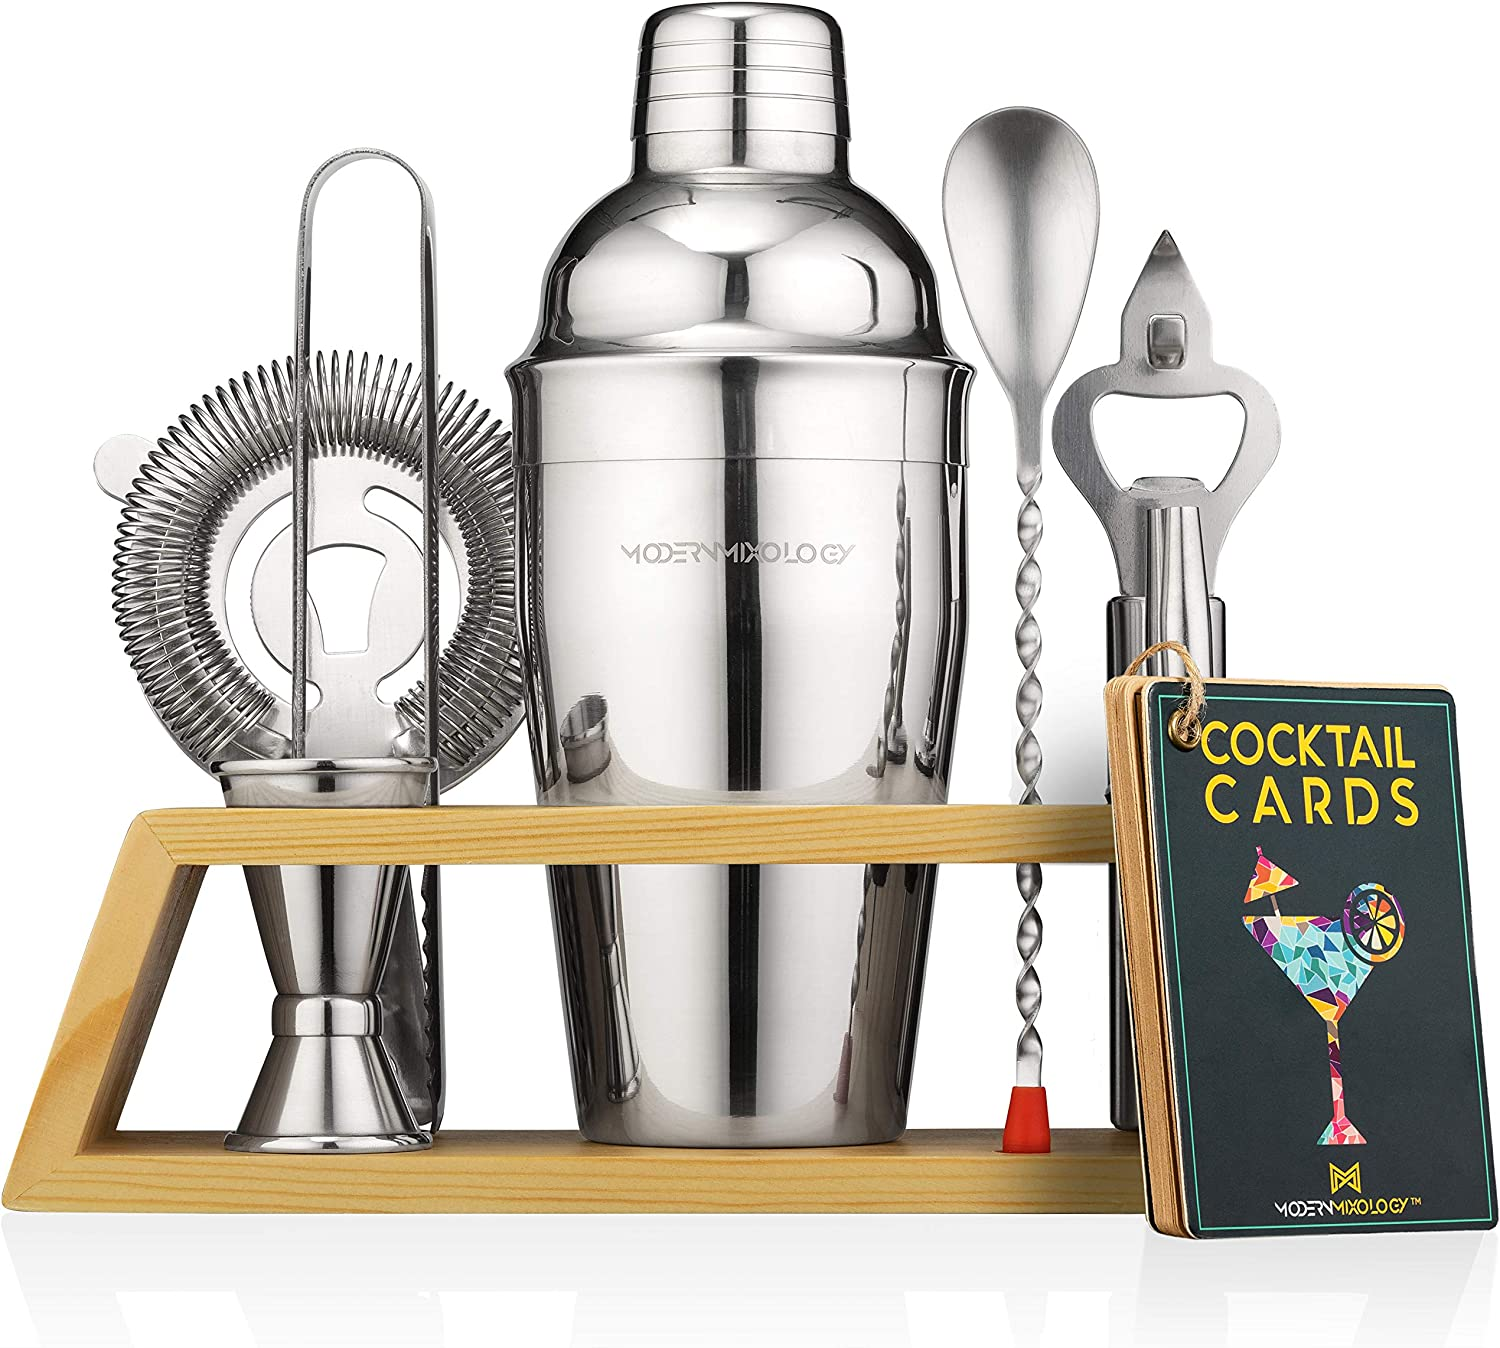 Mixology Bartender Kit with Stand | Bar Set Cocktail Shaker Set for Drink Mixing - Bar Tools: Martini Shaker, Jigger, Strainer, Bar Mixer Spoon, Tongs, Bottle Opener | Best Bar Set for the Home